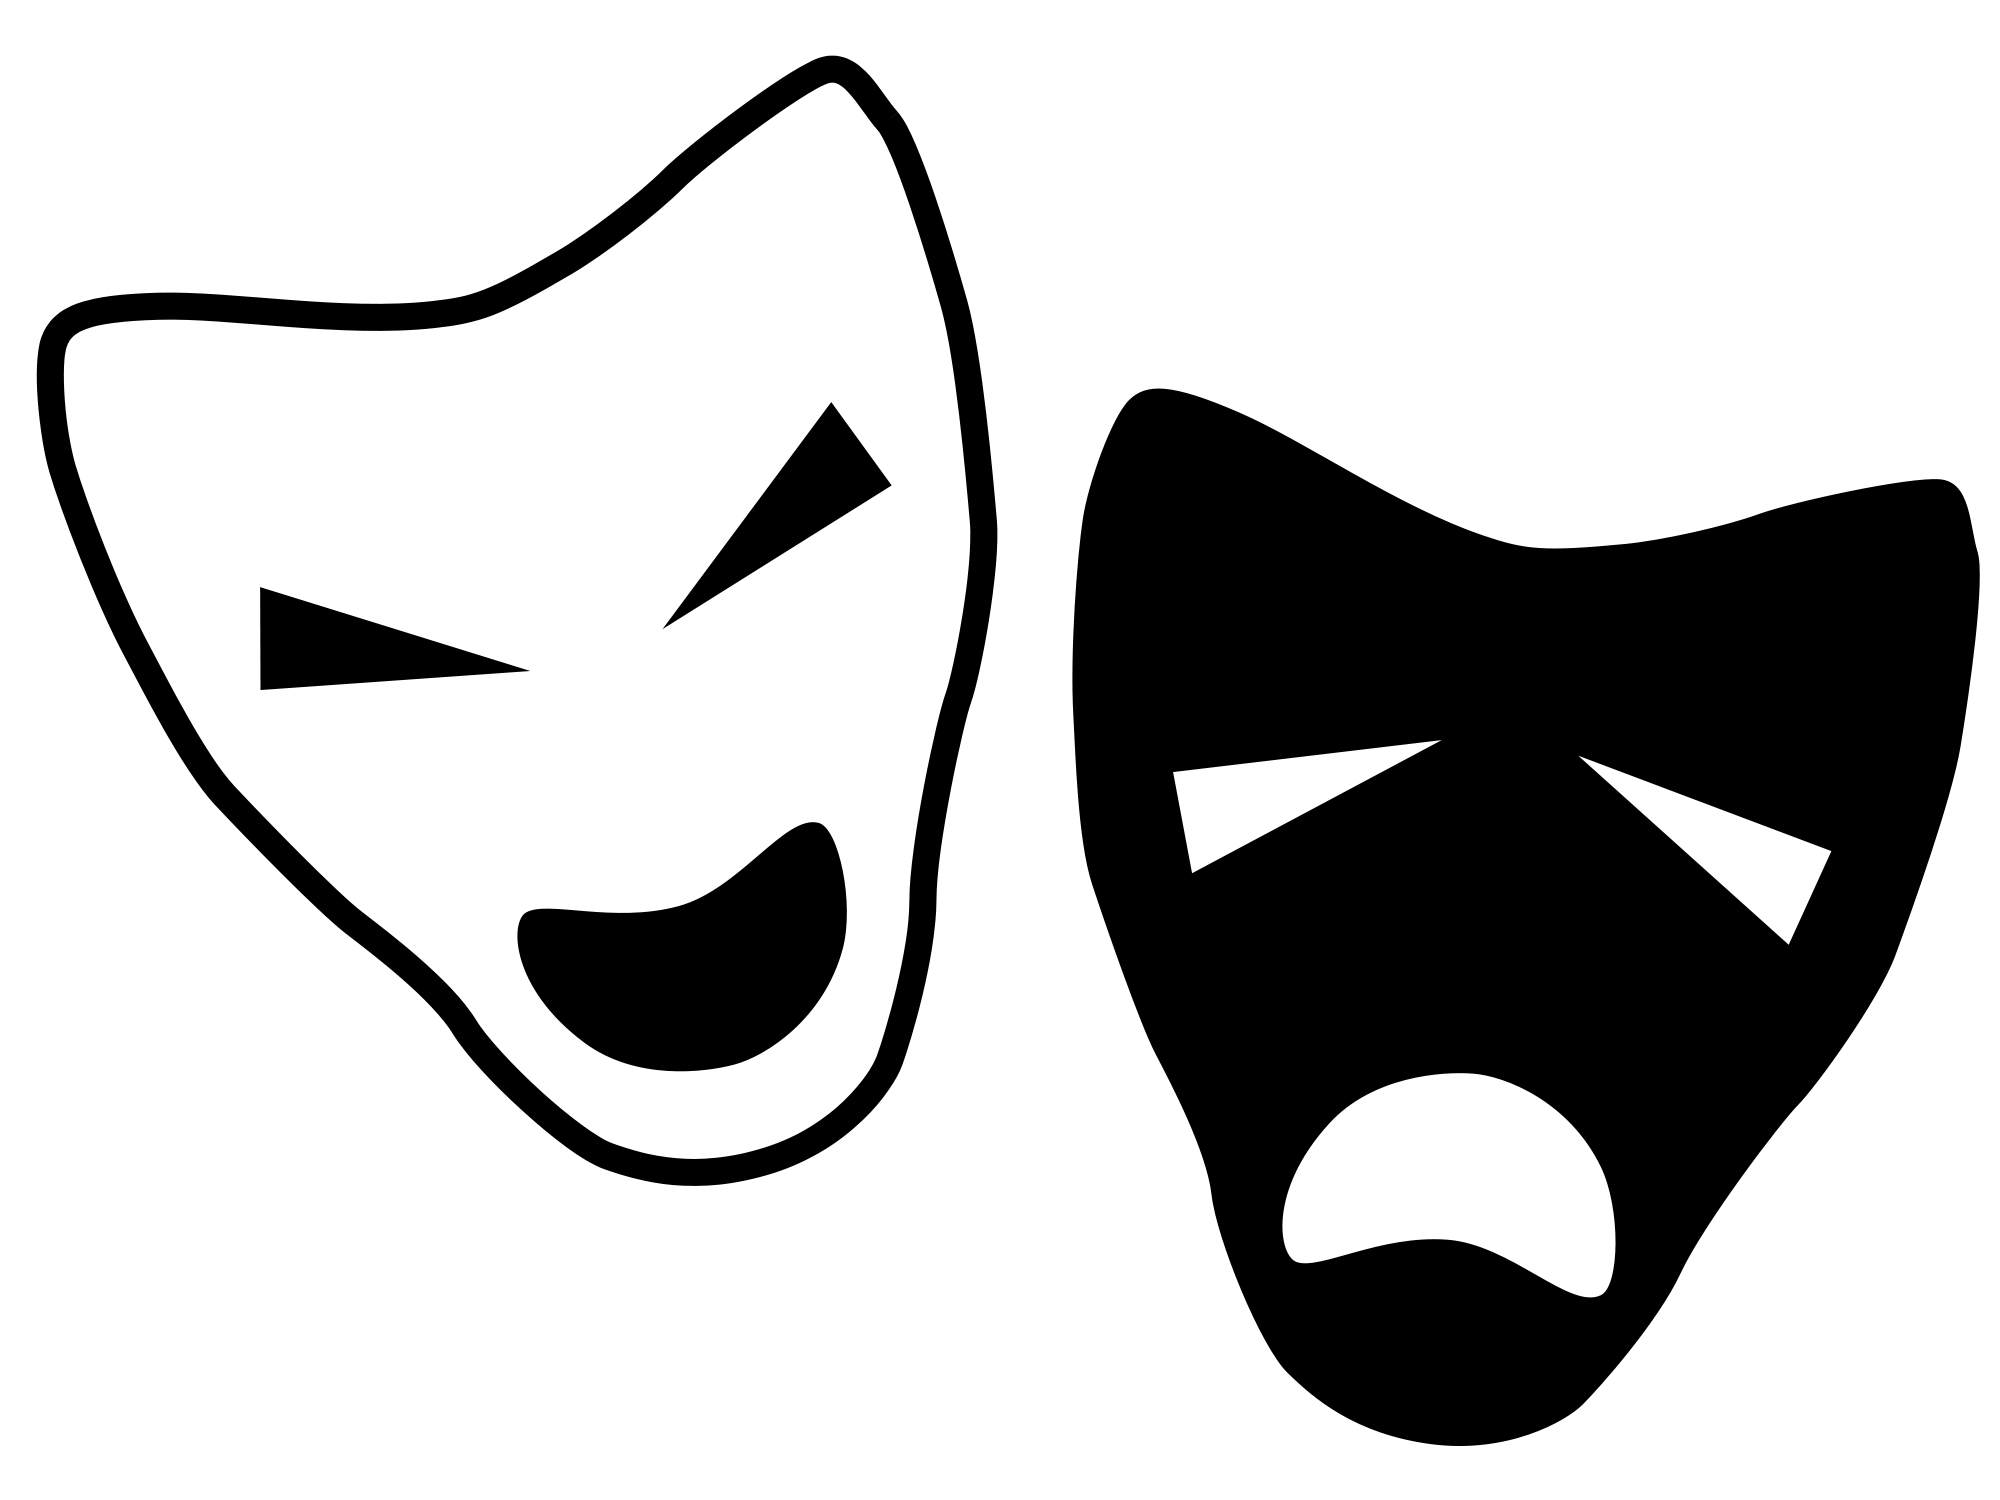 image transparent stock Theatre drama clip art. Mask clipart black and white